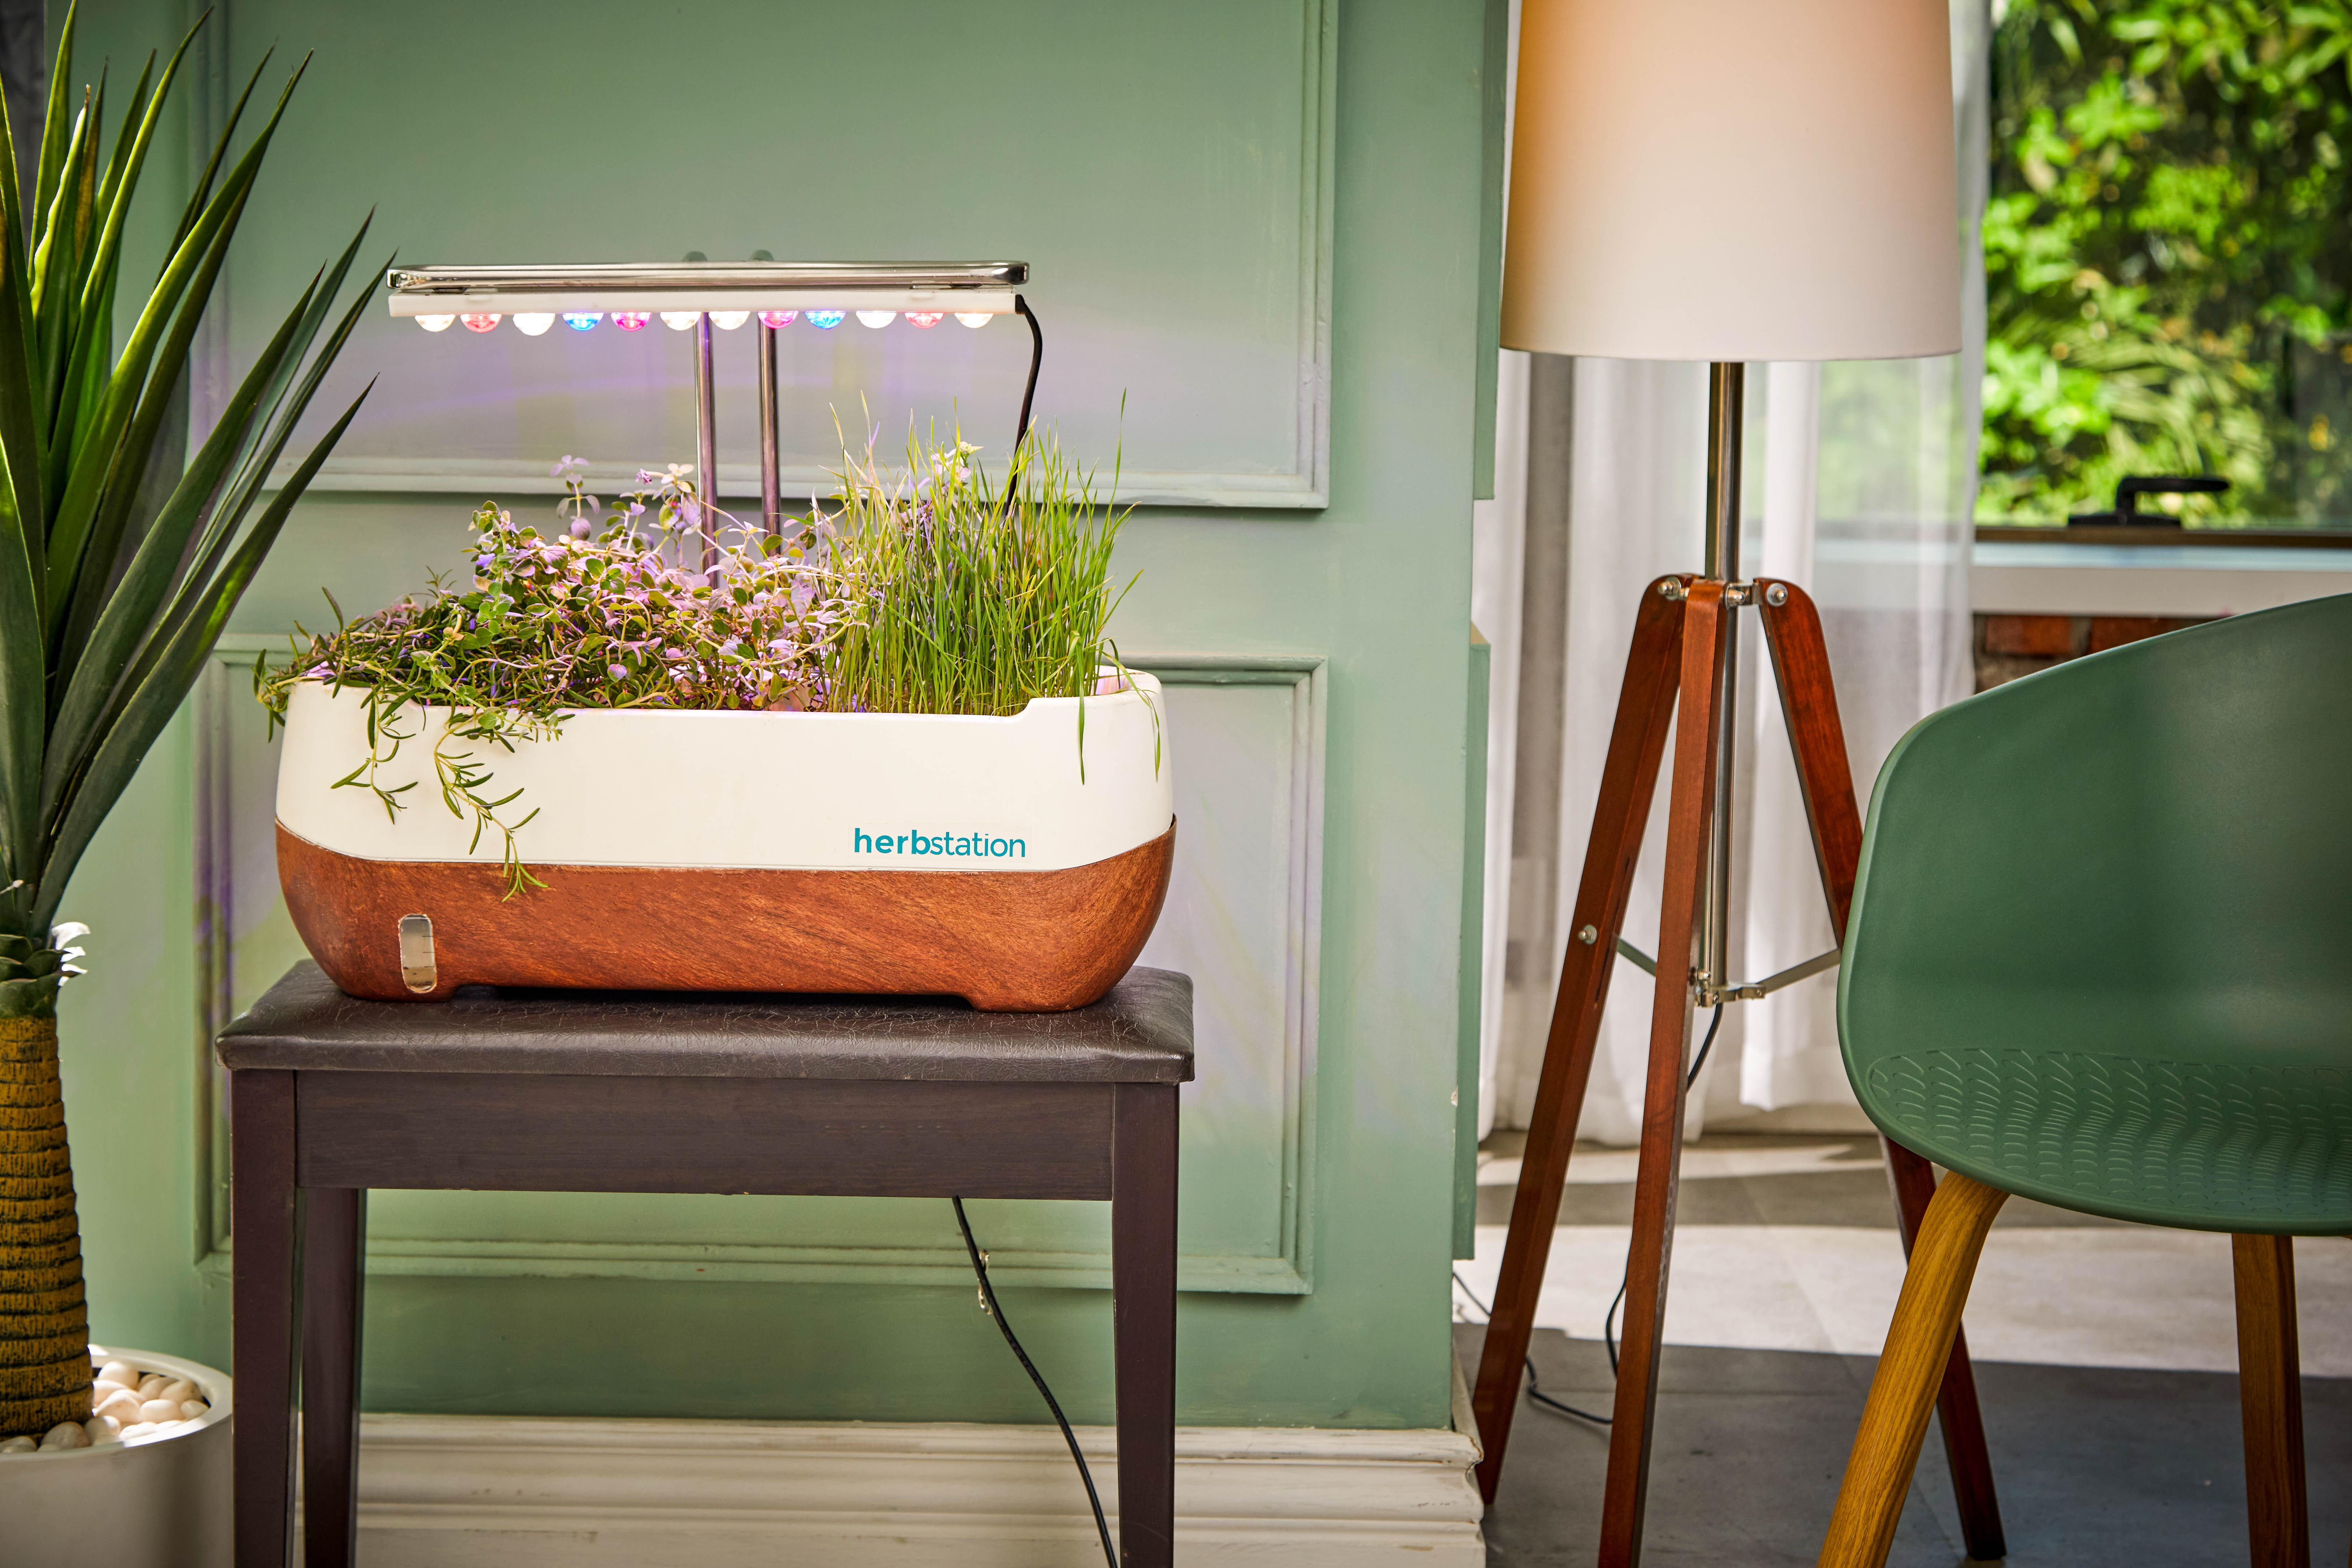 13 simple ways to green your apartment   6sqft